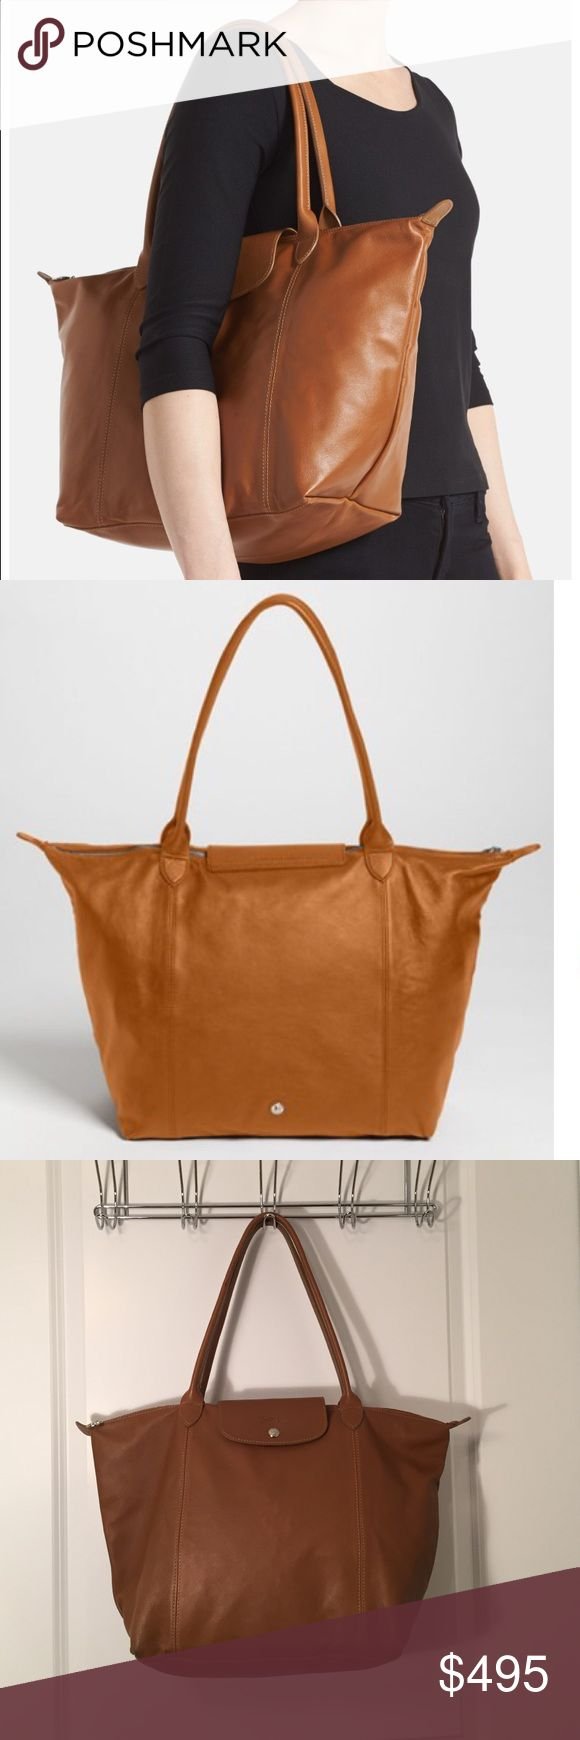 Longchamp Le Pliage Cuir Leather Tote in Tan. NWOT Longchamp Le Pliage Cuir Leather Tote in Tan. NWOT. Stunning bag for the true Longchamp fan. Longchamp Bags Totes